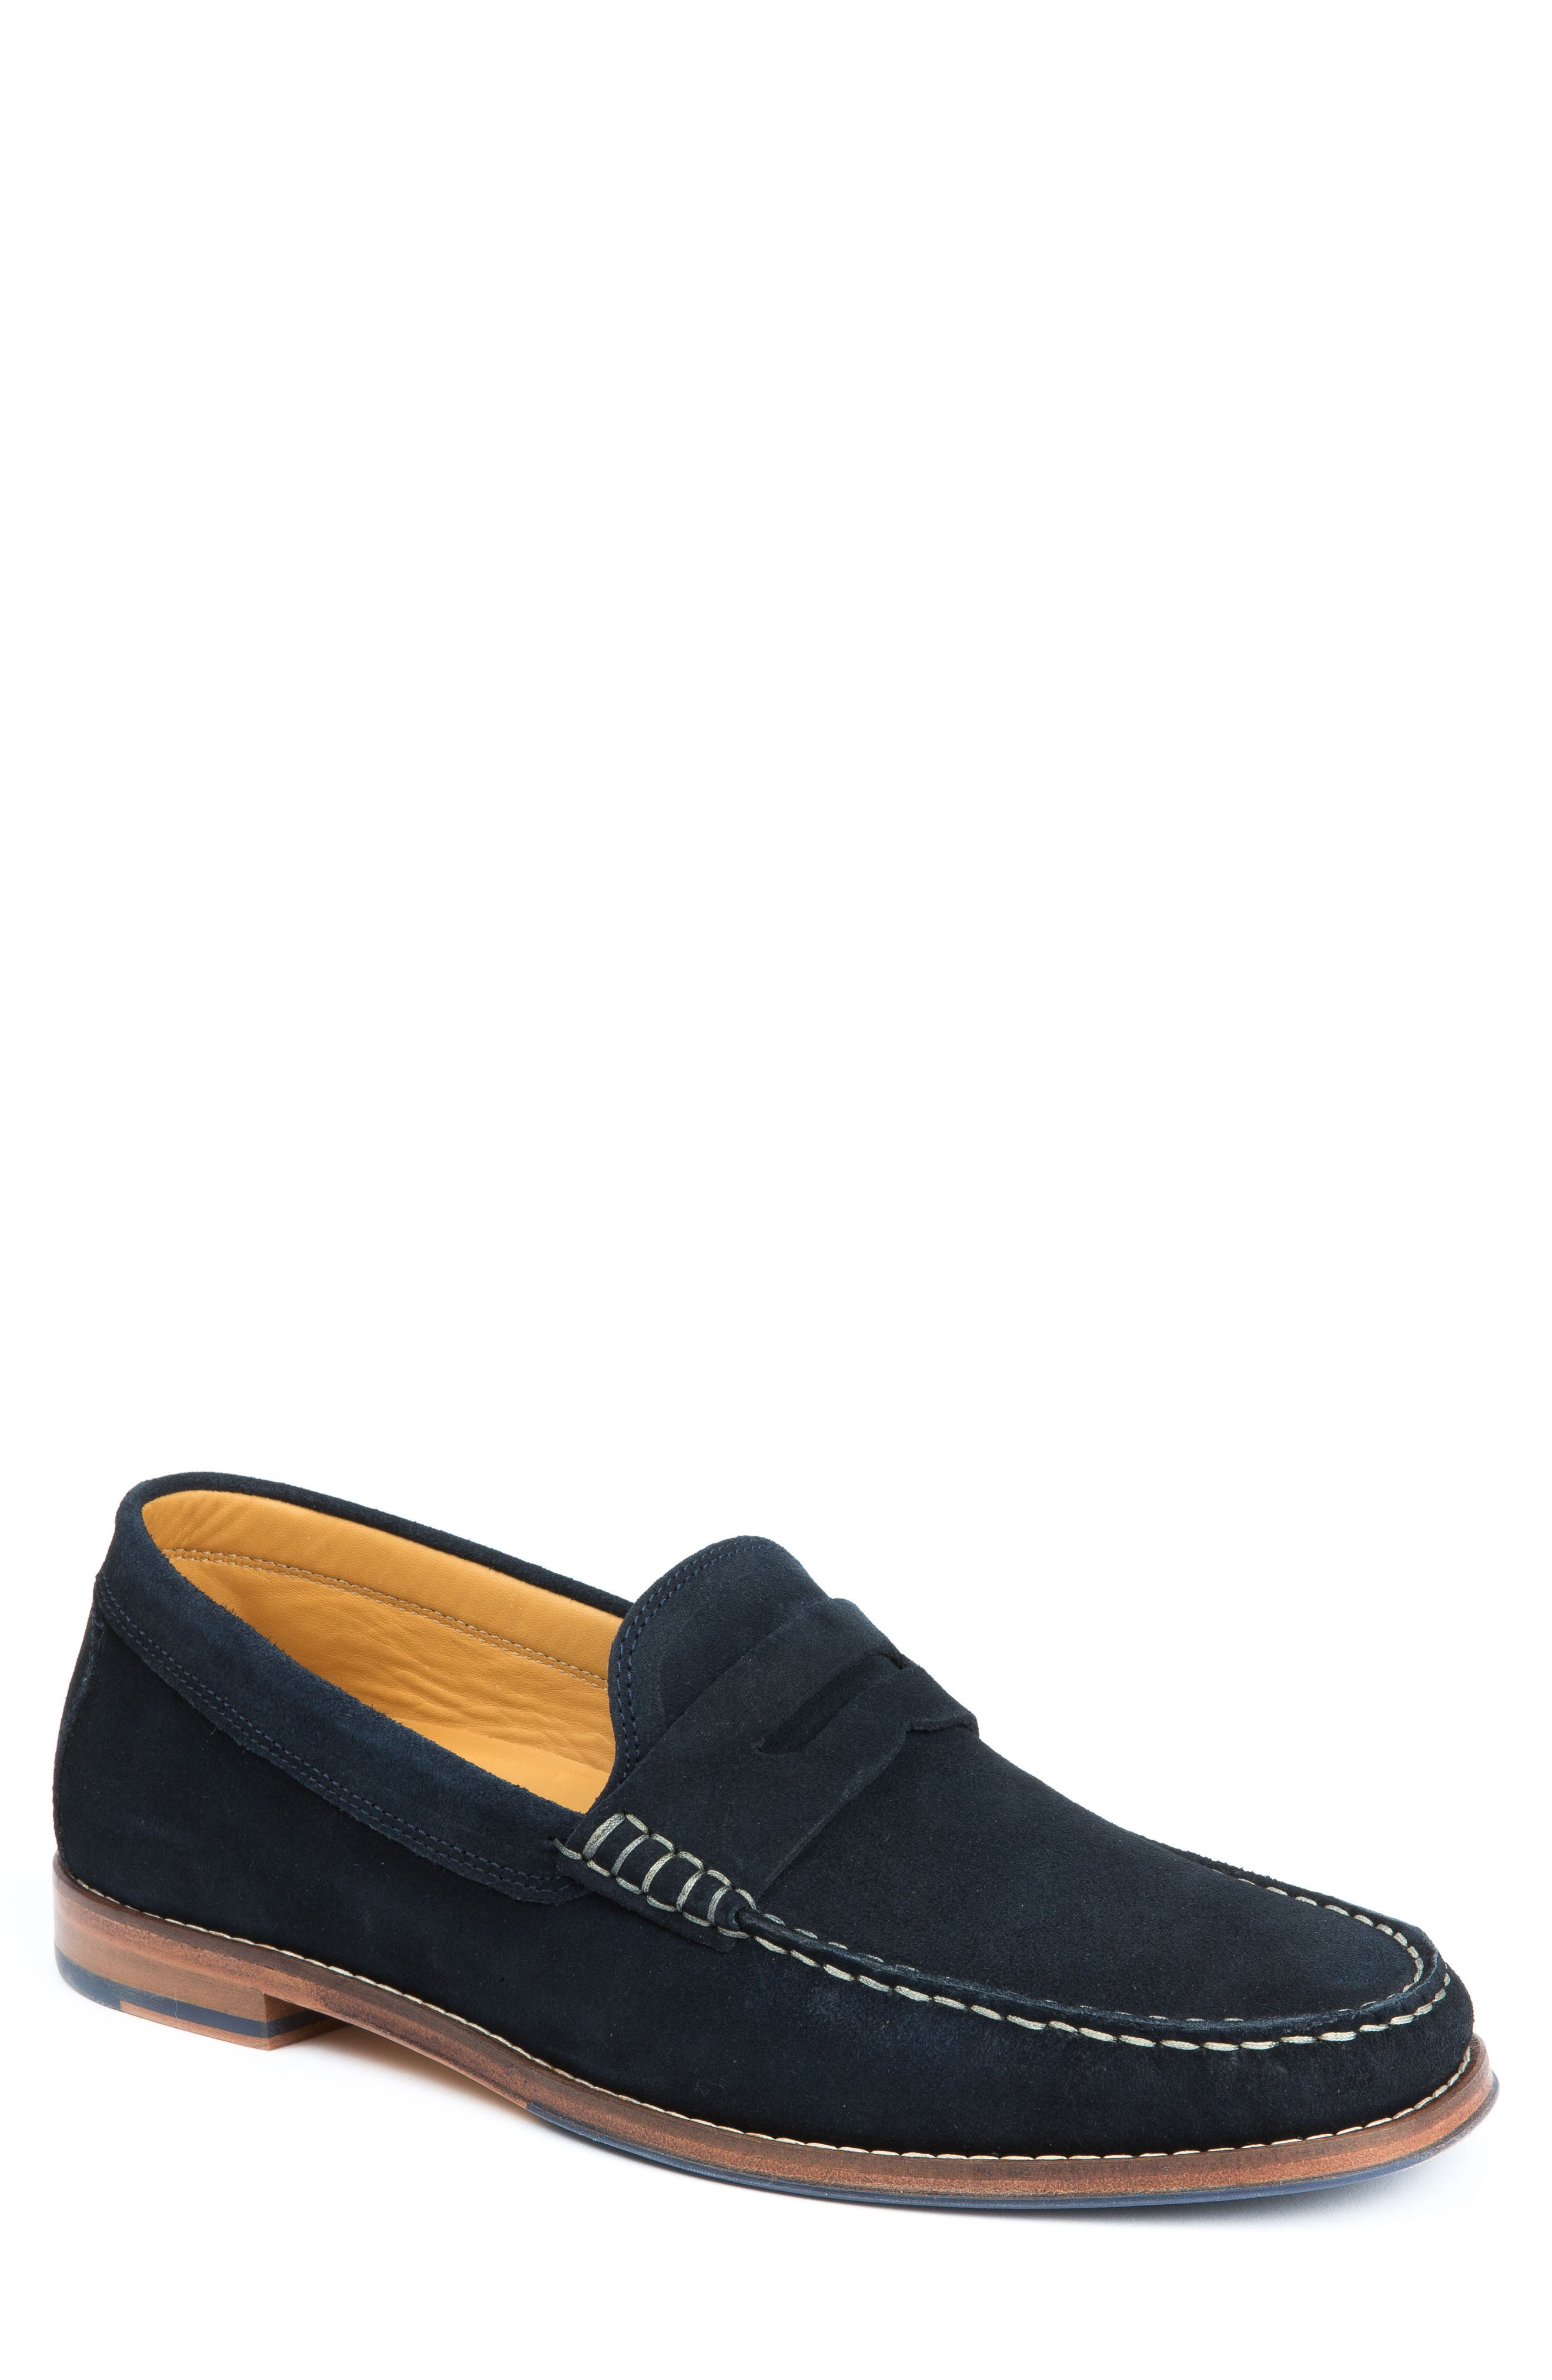 Ripleys Penny Loafer,                         Main,                         color, 410